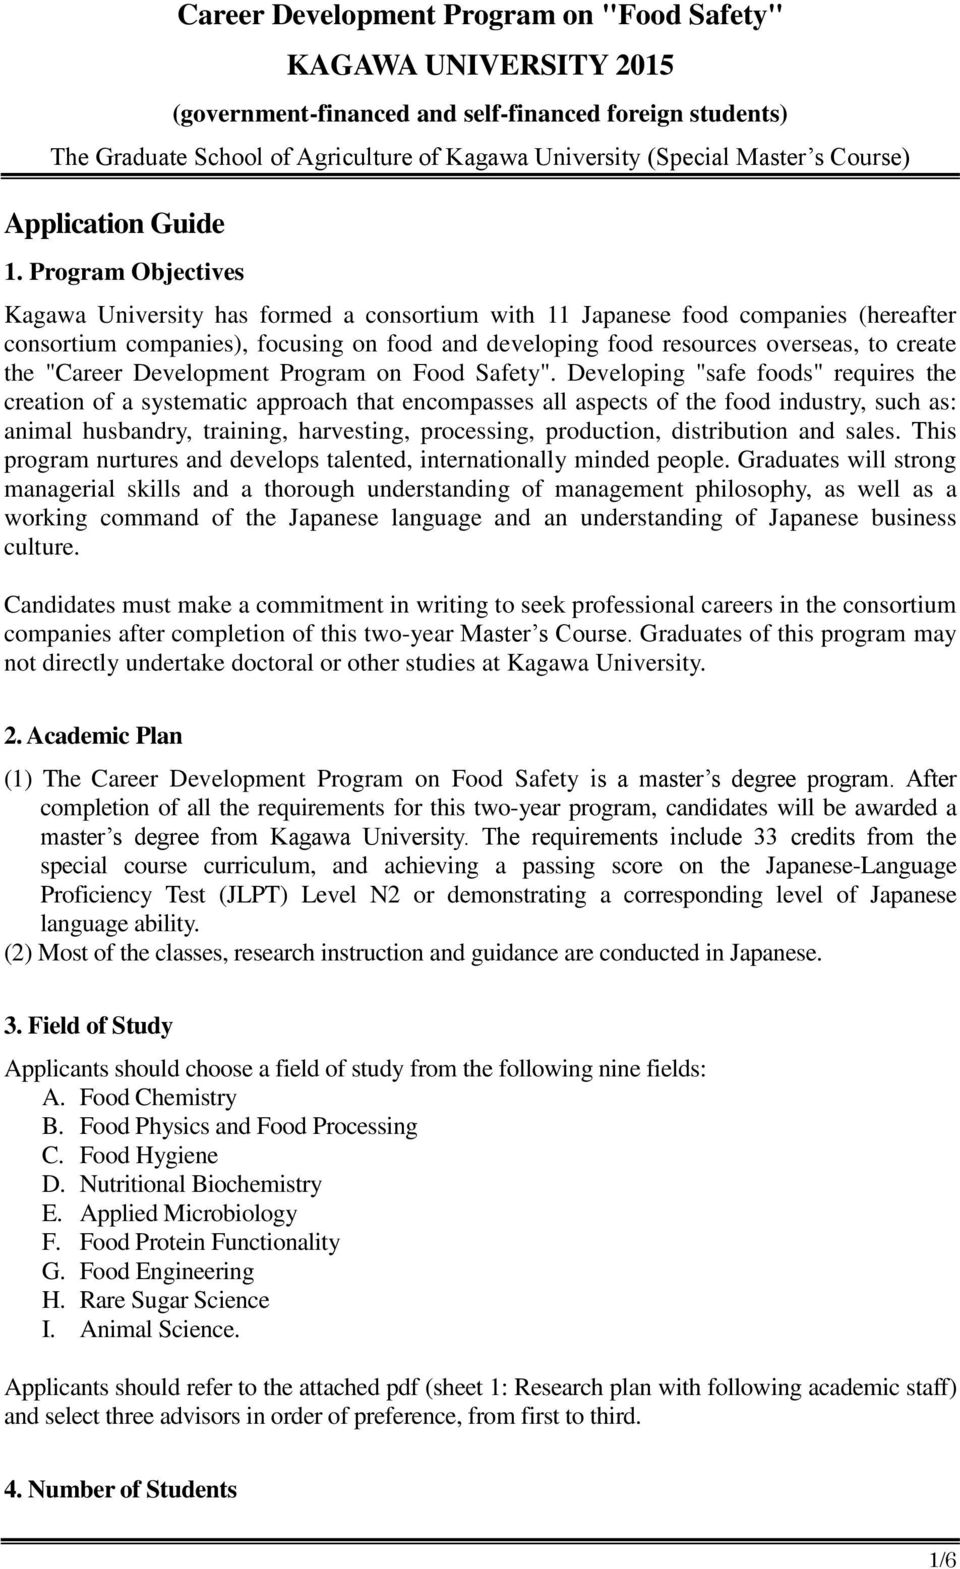 """Career Development Program on Food Safety""."